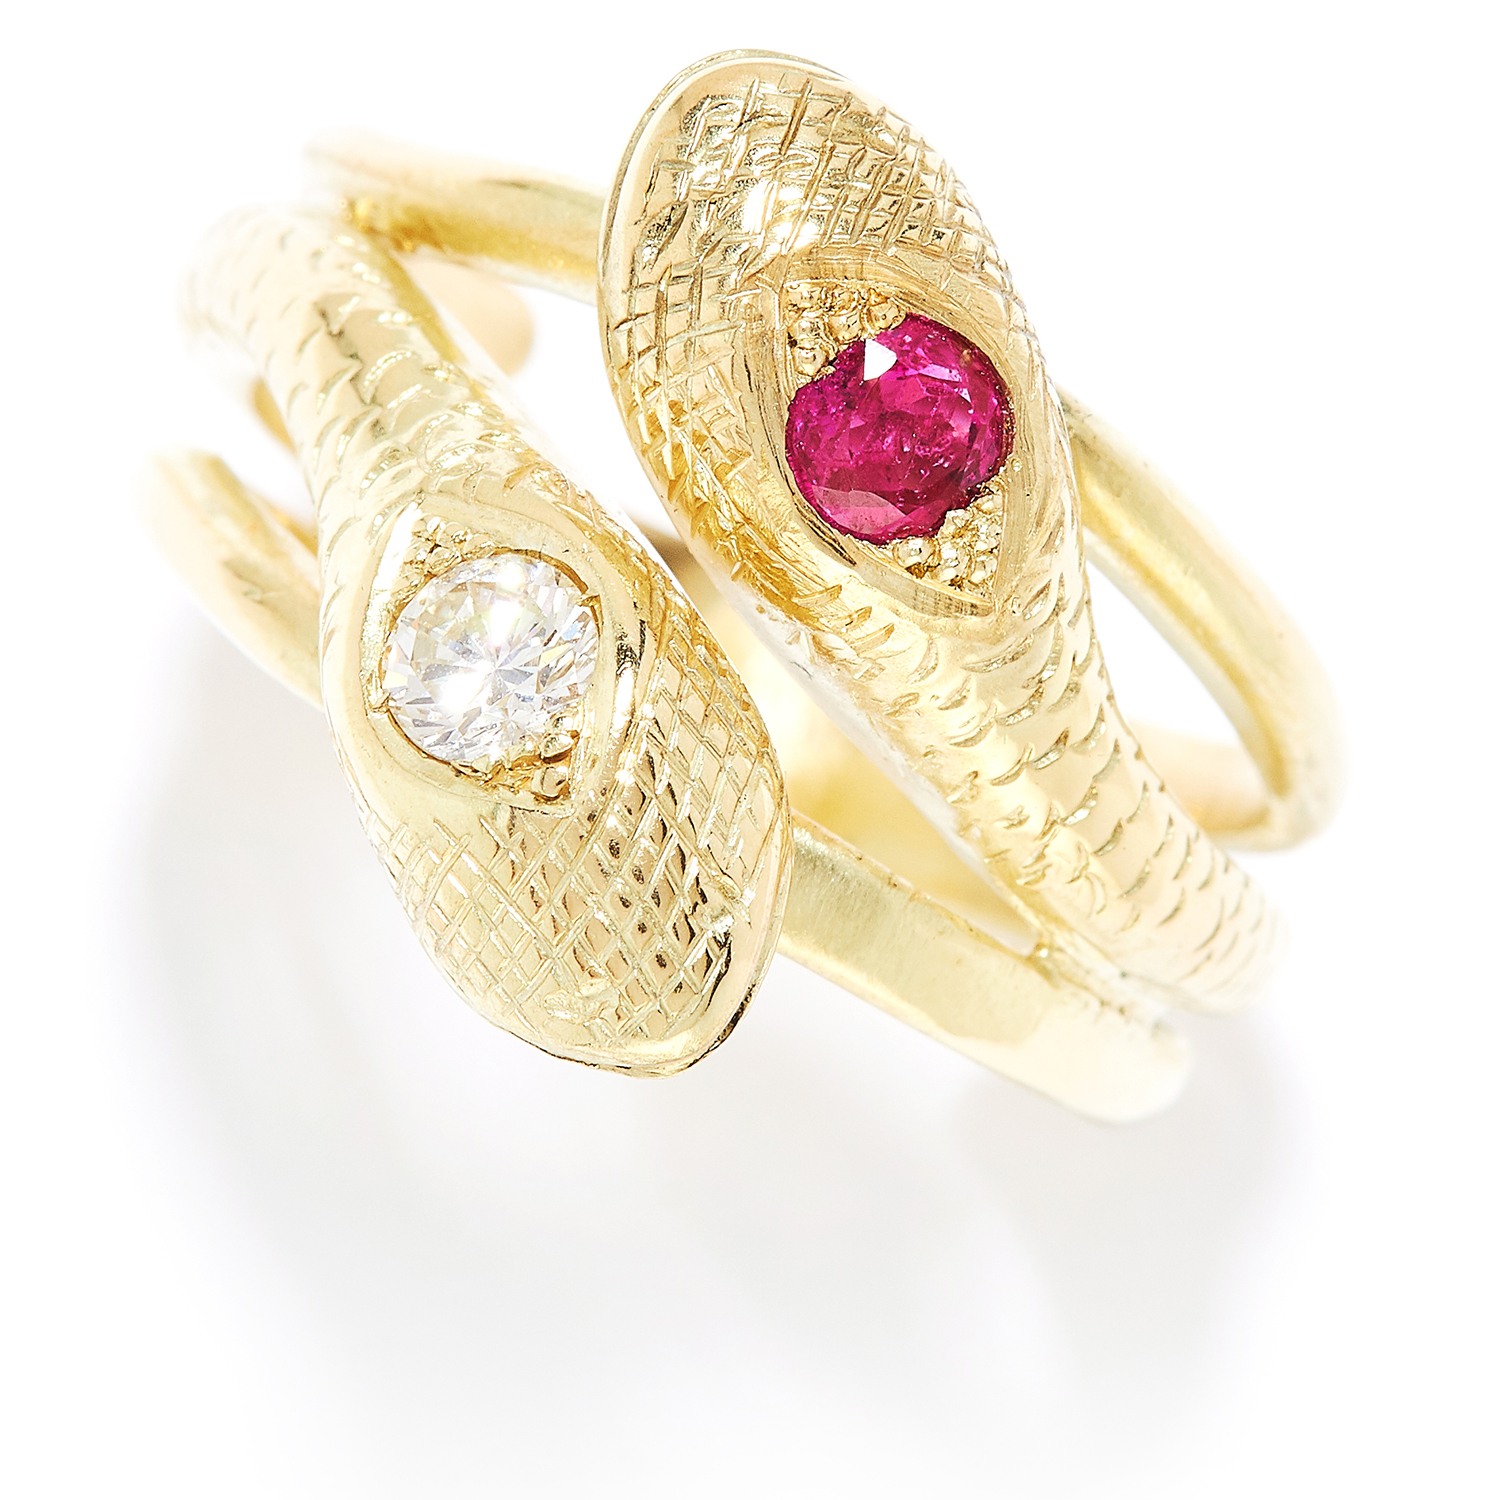 Los 13 - ANTIQUE RUBY AND DIAMOND SNAKE RING in high carat yellow gold, designed as two intertwined snakes,